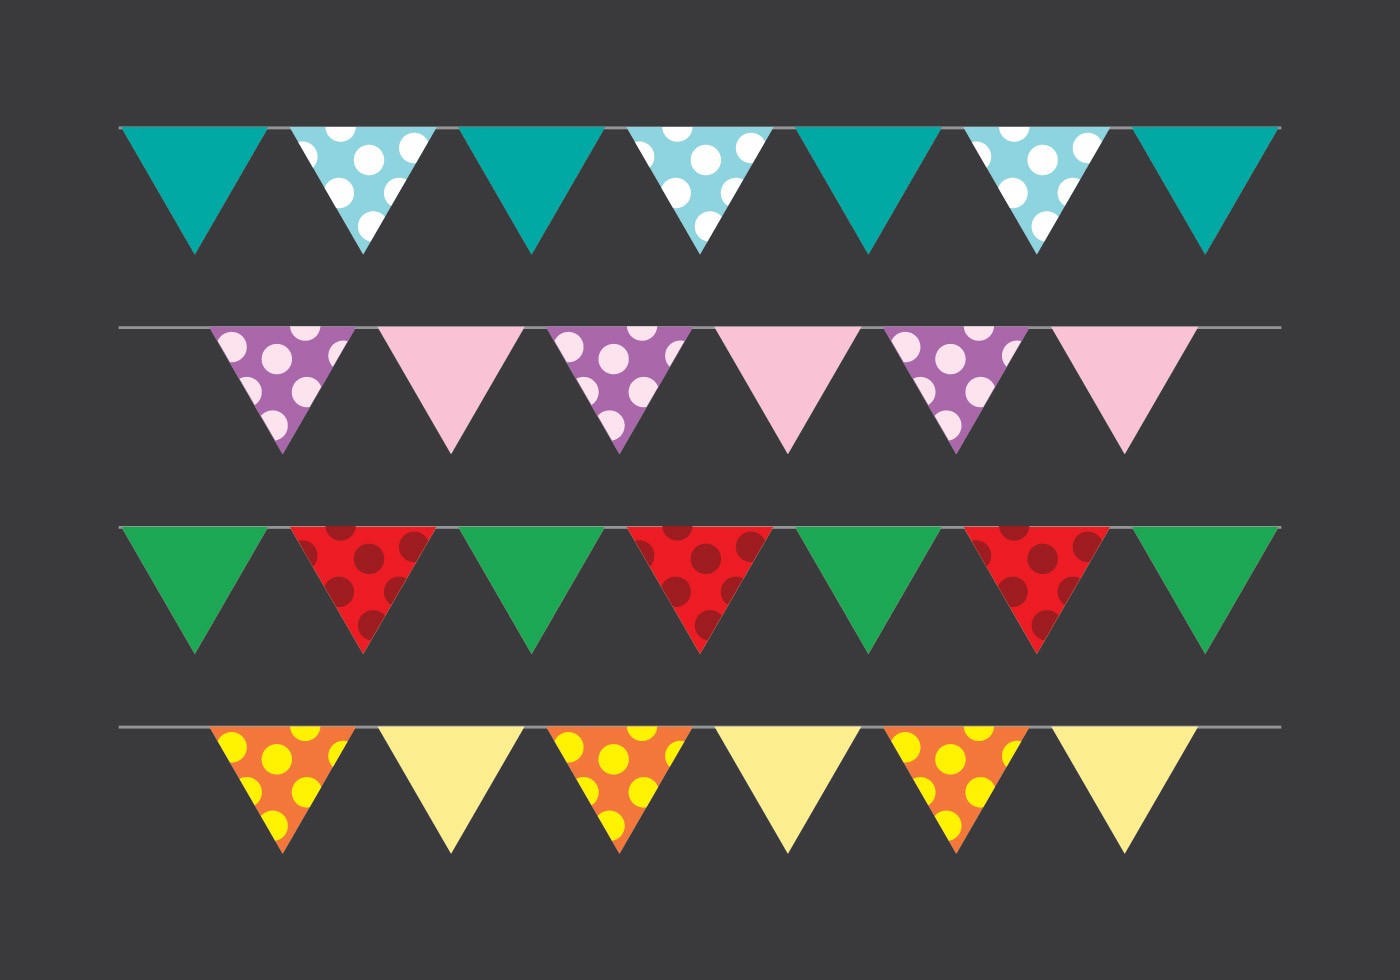 Shopkins clipart flag image transparent Bunting Free Vector Art - (9628 Free Downloads) image transparent